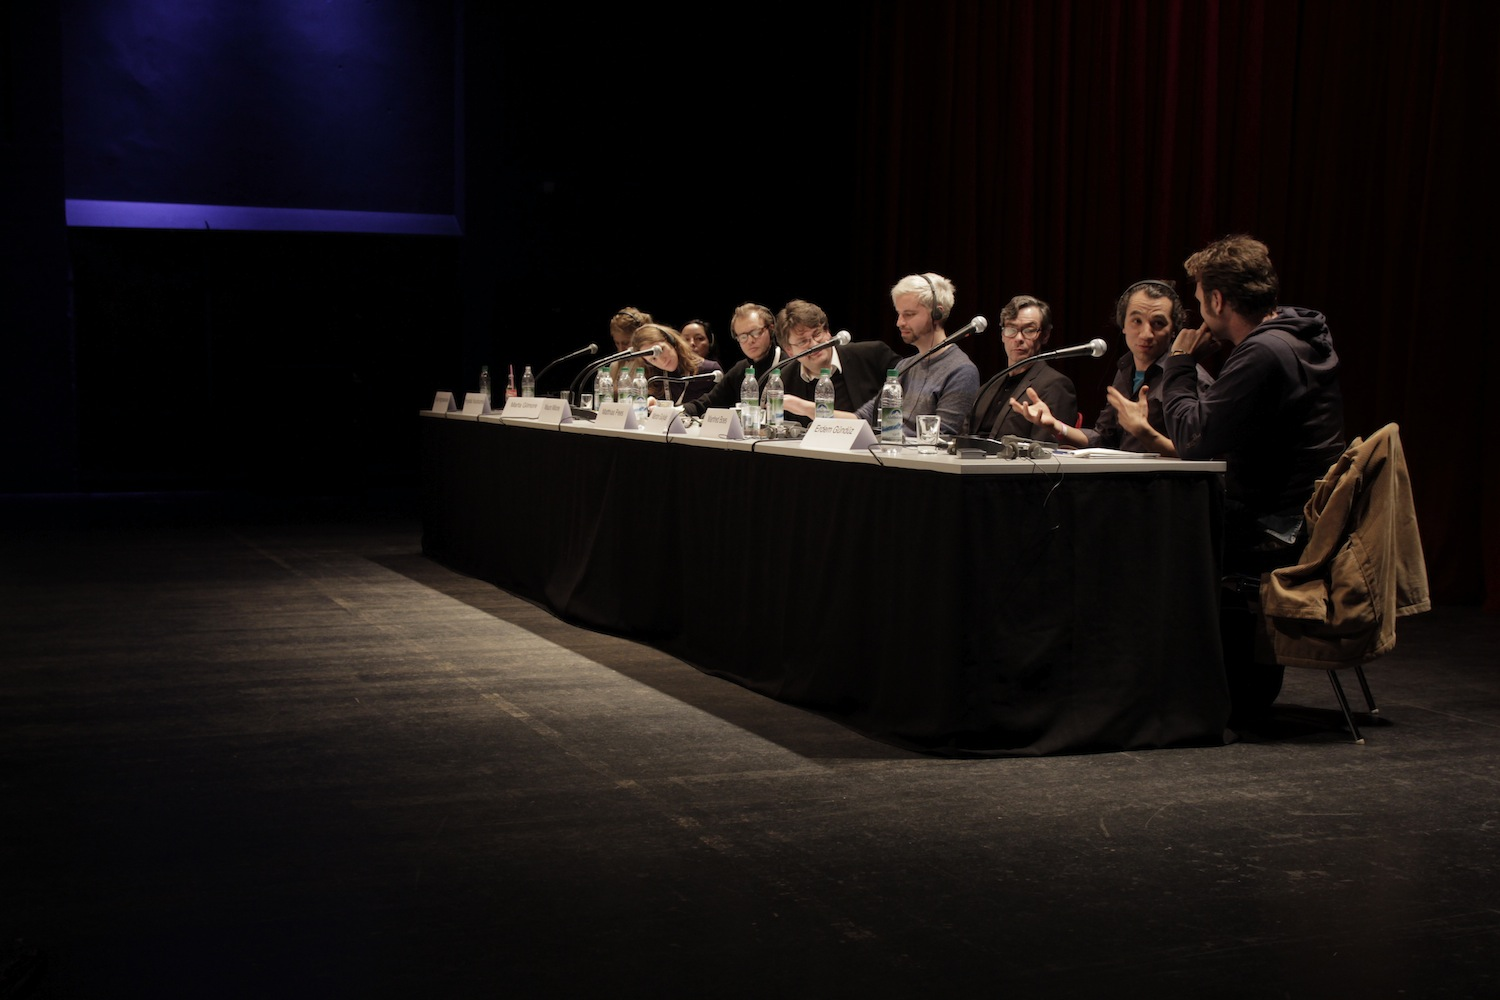 Podiumsdiskussion Theater in der Krise